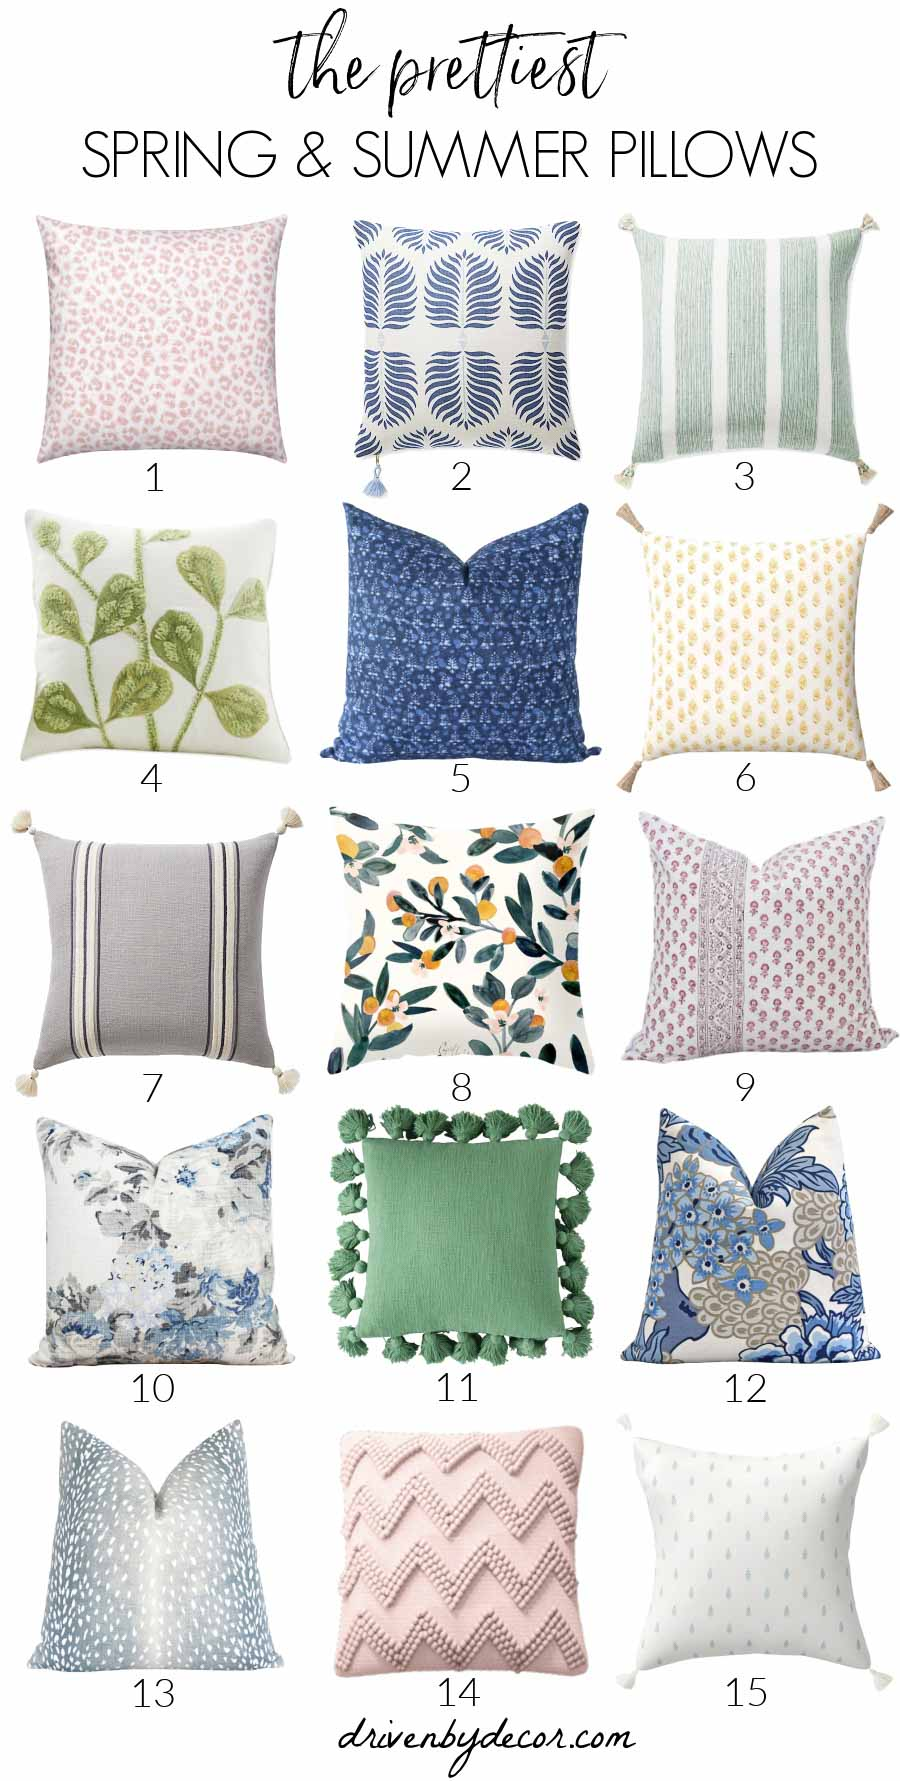 Spring pillows - all my favorites! Sources to each are included in post!